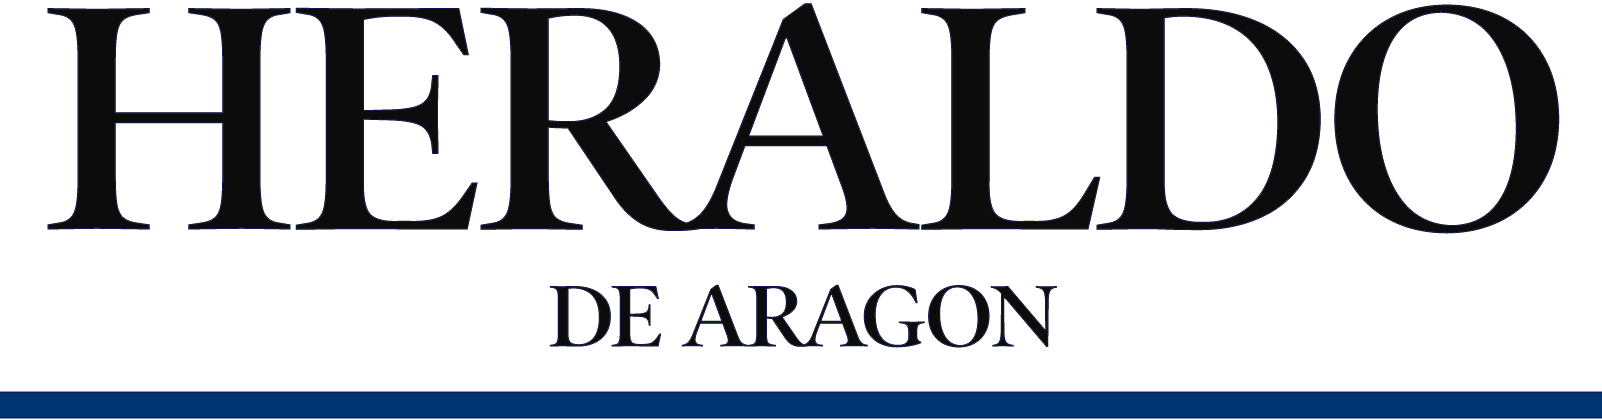 Heraldo_de_Aragon Back To Back Legal Consultores Internacionales Comercio Exterior Defensa Jurídica Internacional